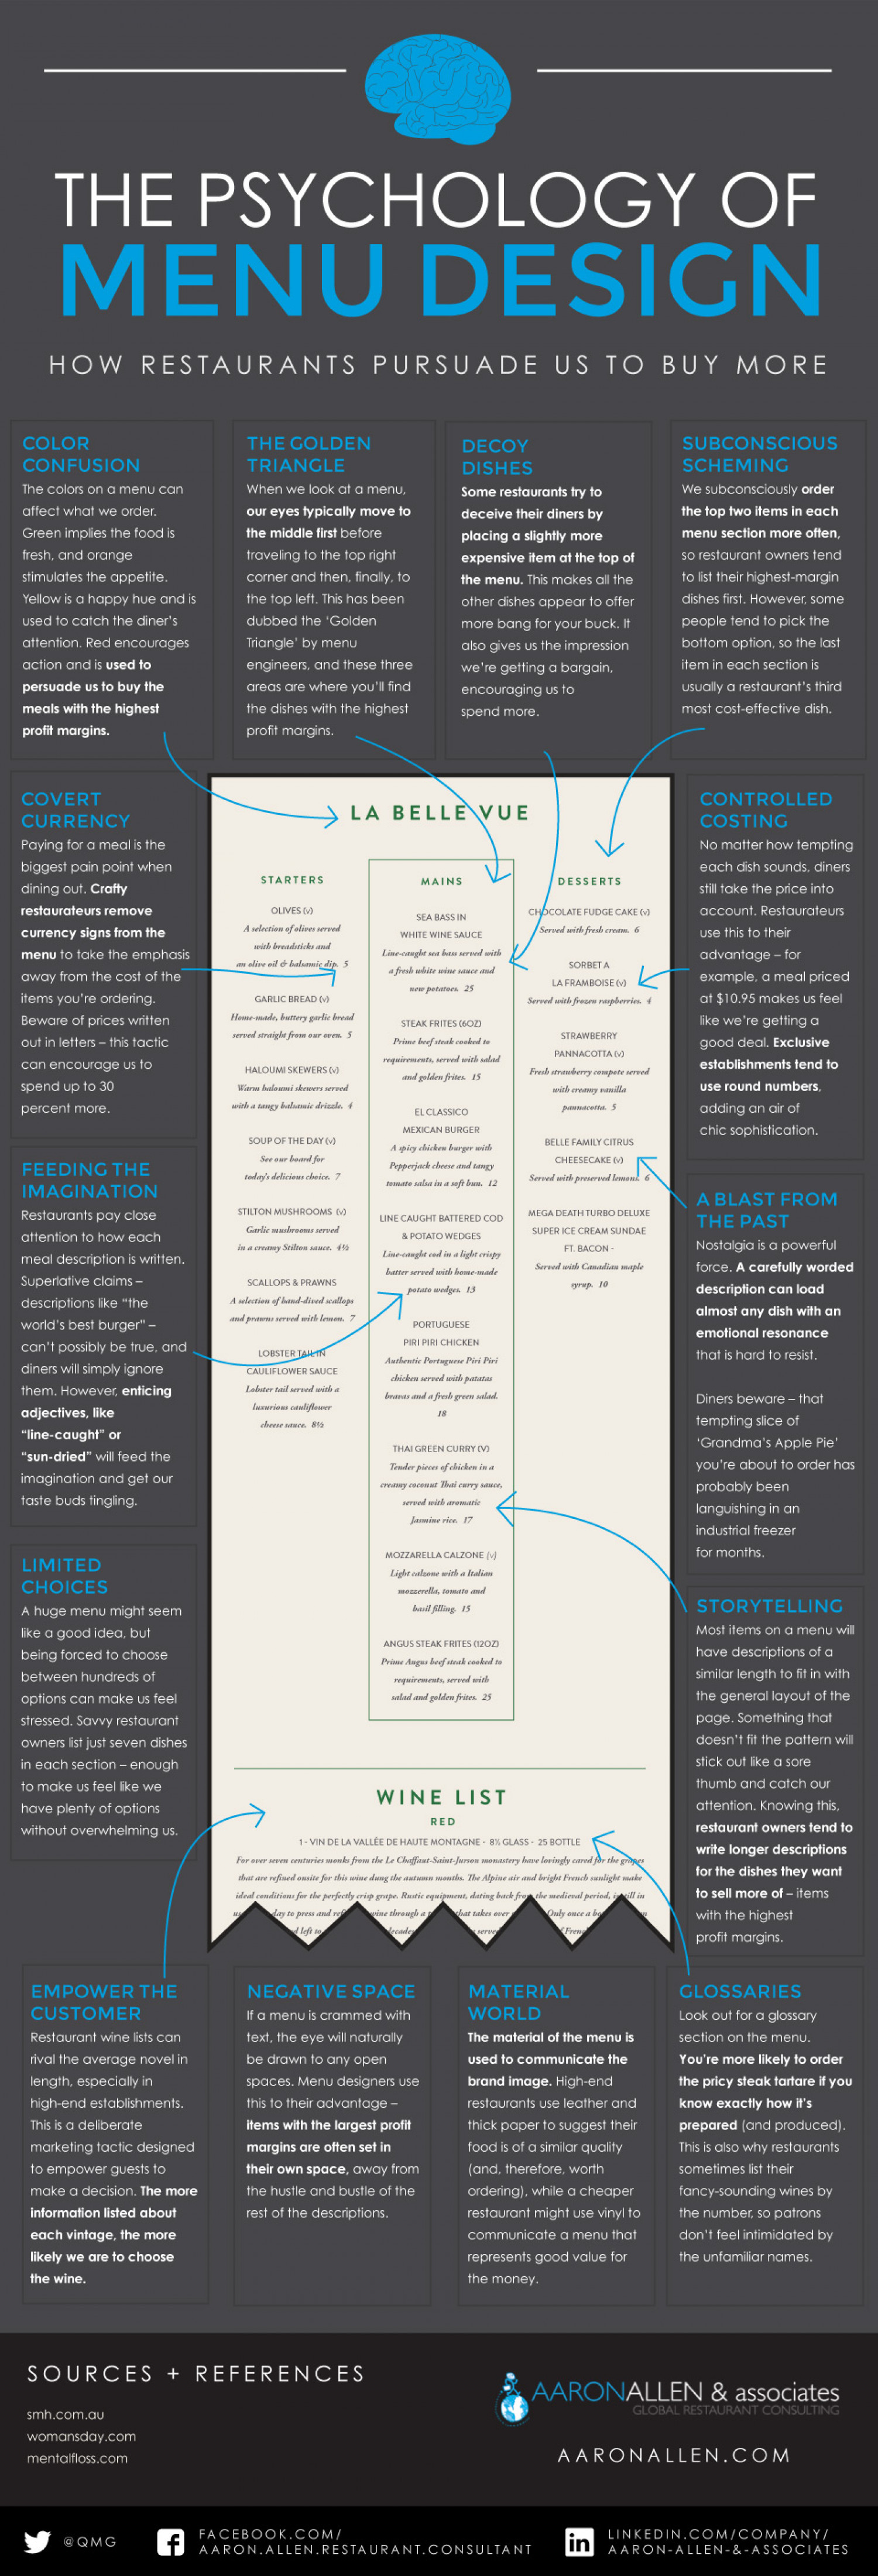 The Psychology of Menu Design Infographic